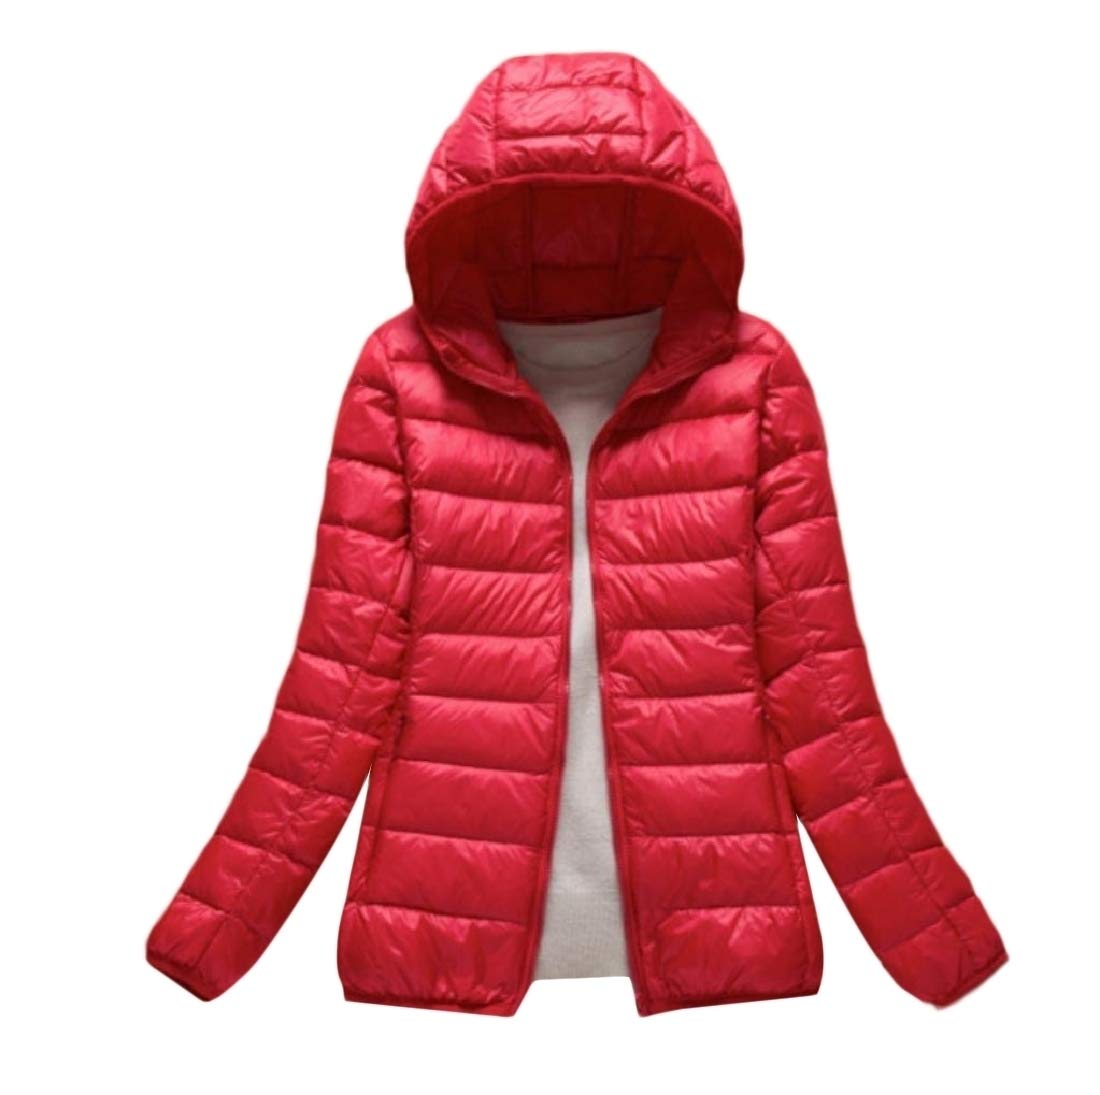 Doufine-women clothes Womens Packable Water-Resistant Puffer Outwear Casual Down Red M